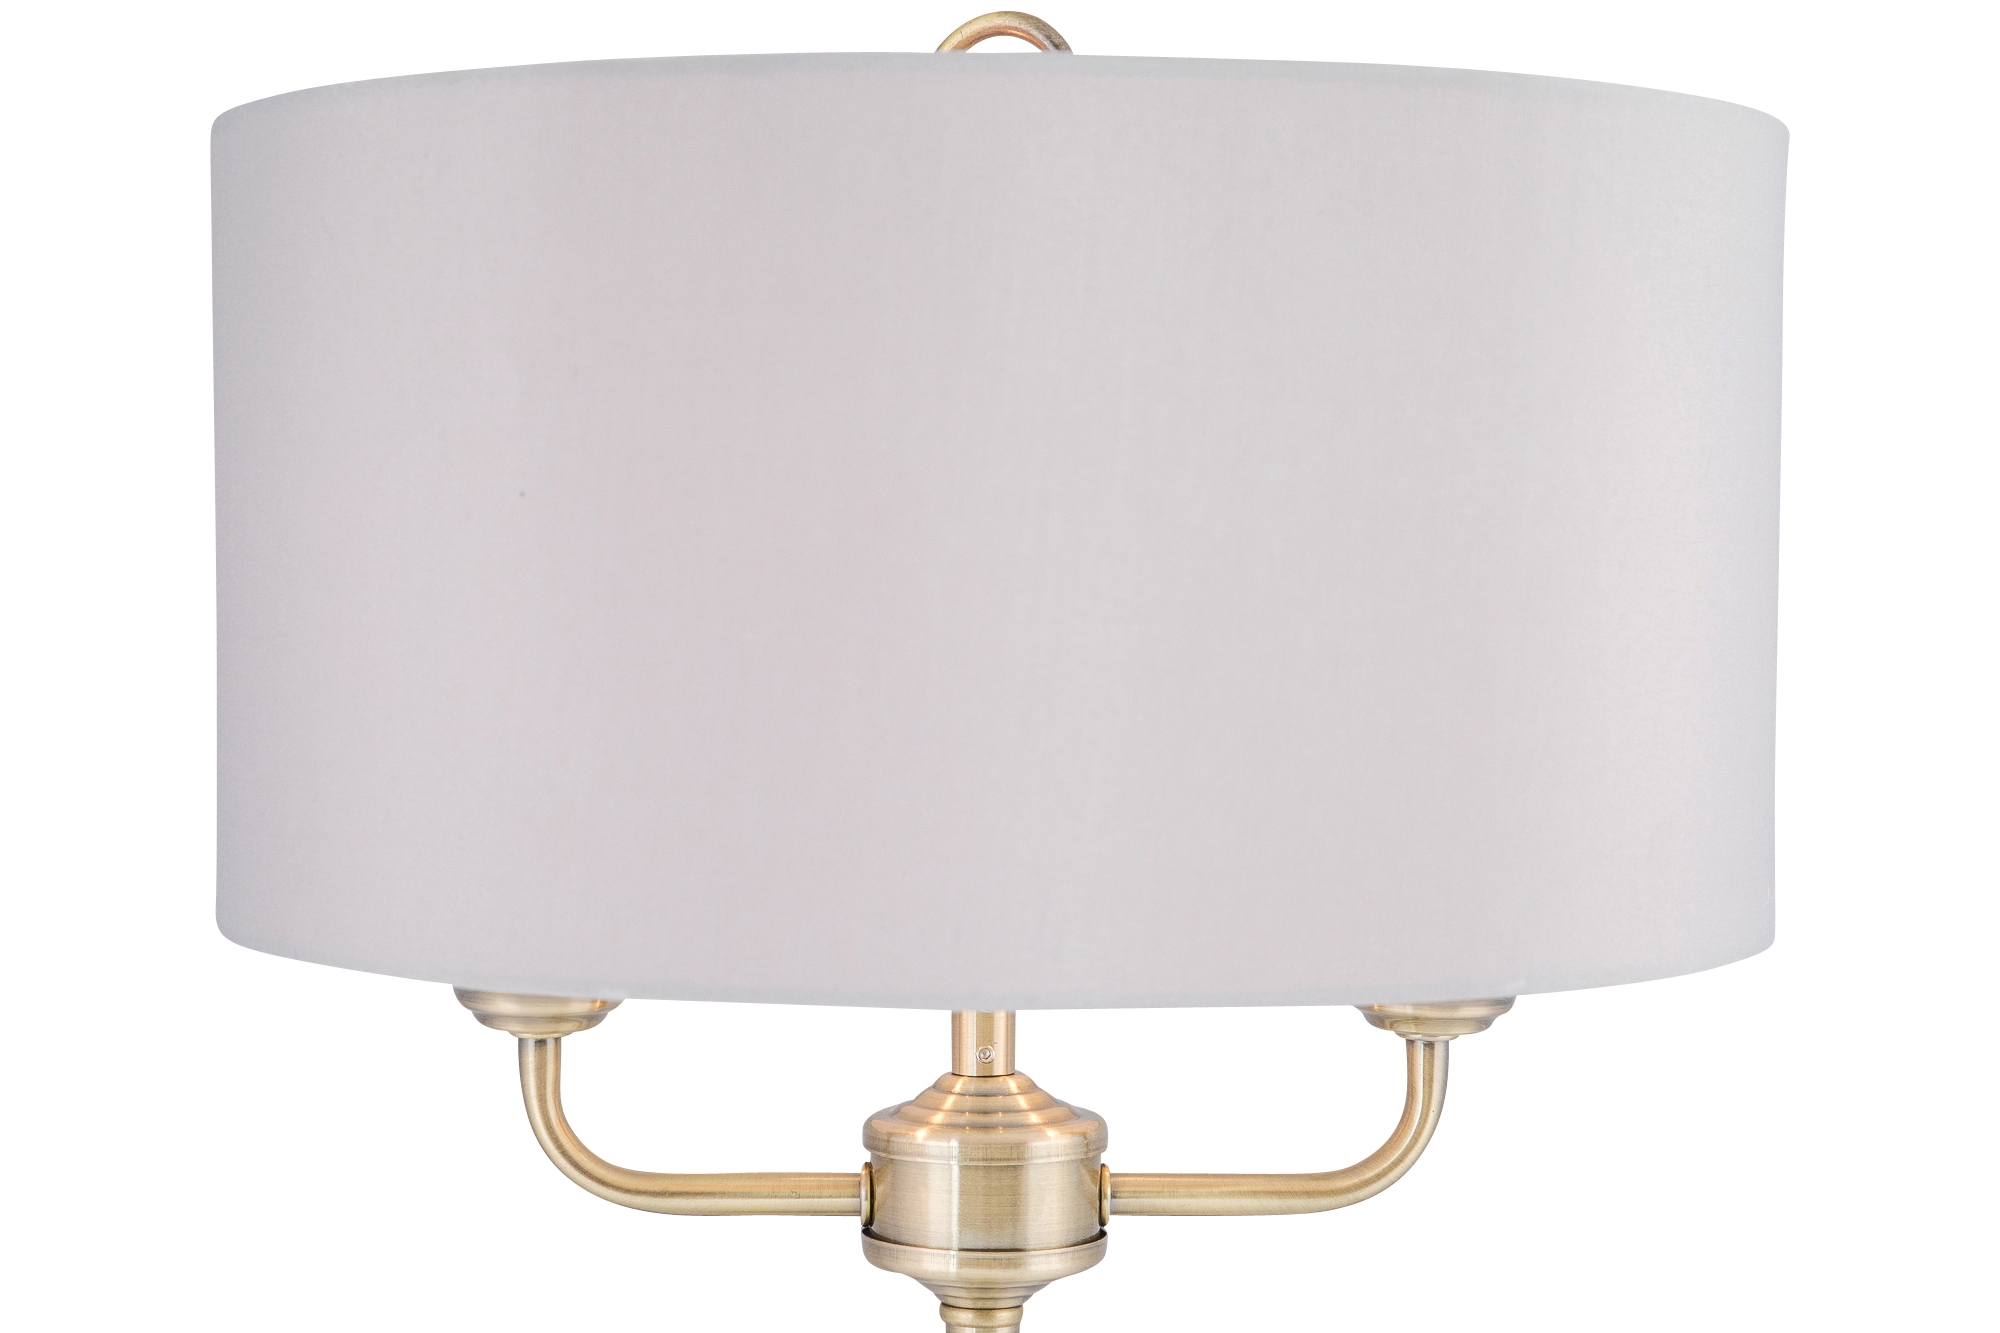 Modern Classic Antique Brass Twin Arm Table Lamp Bedside